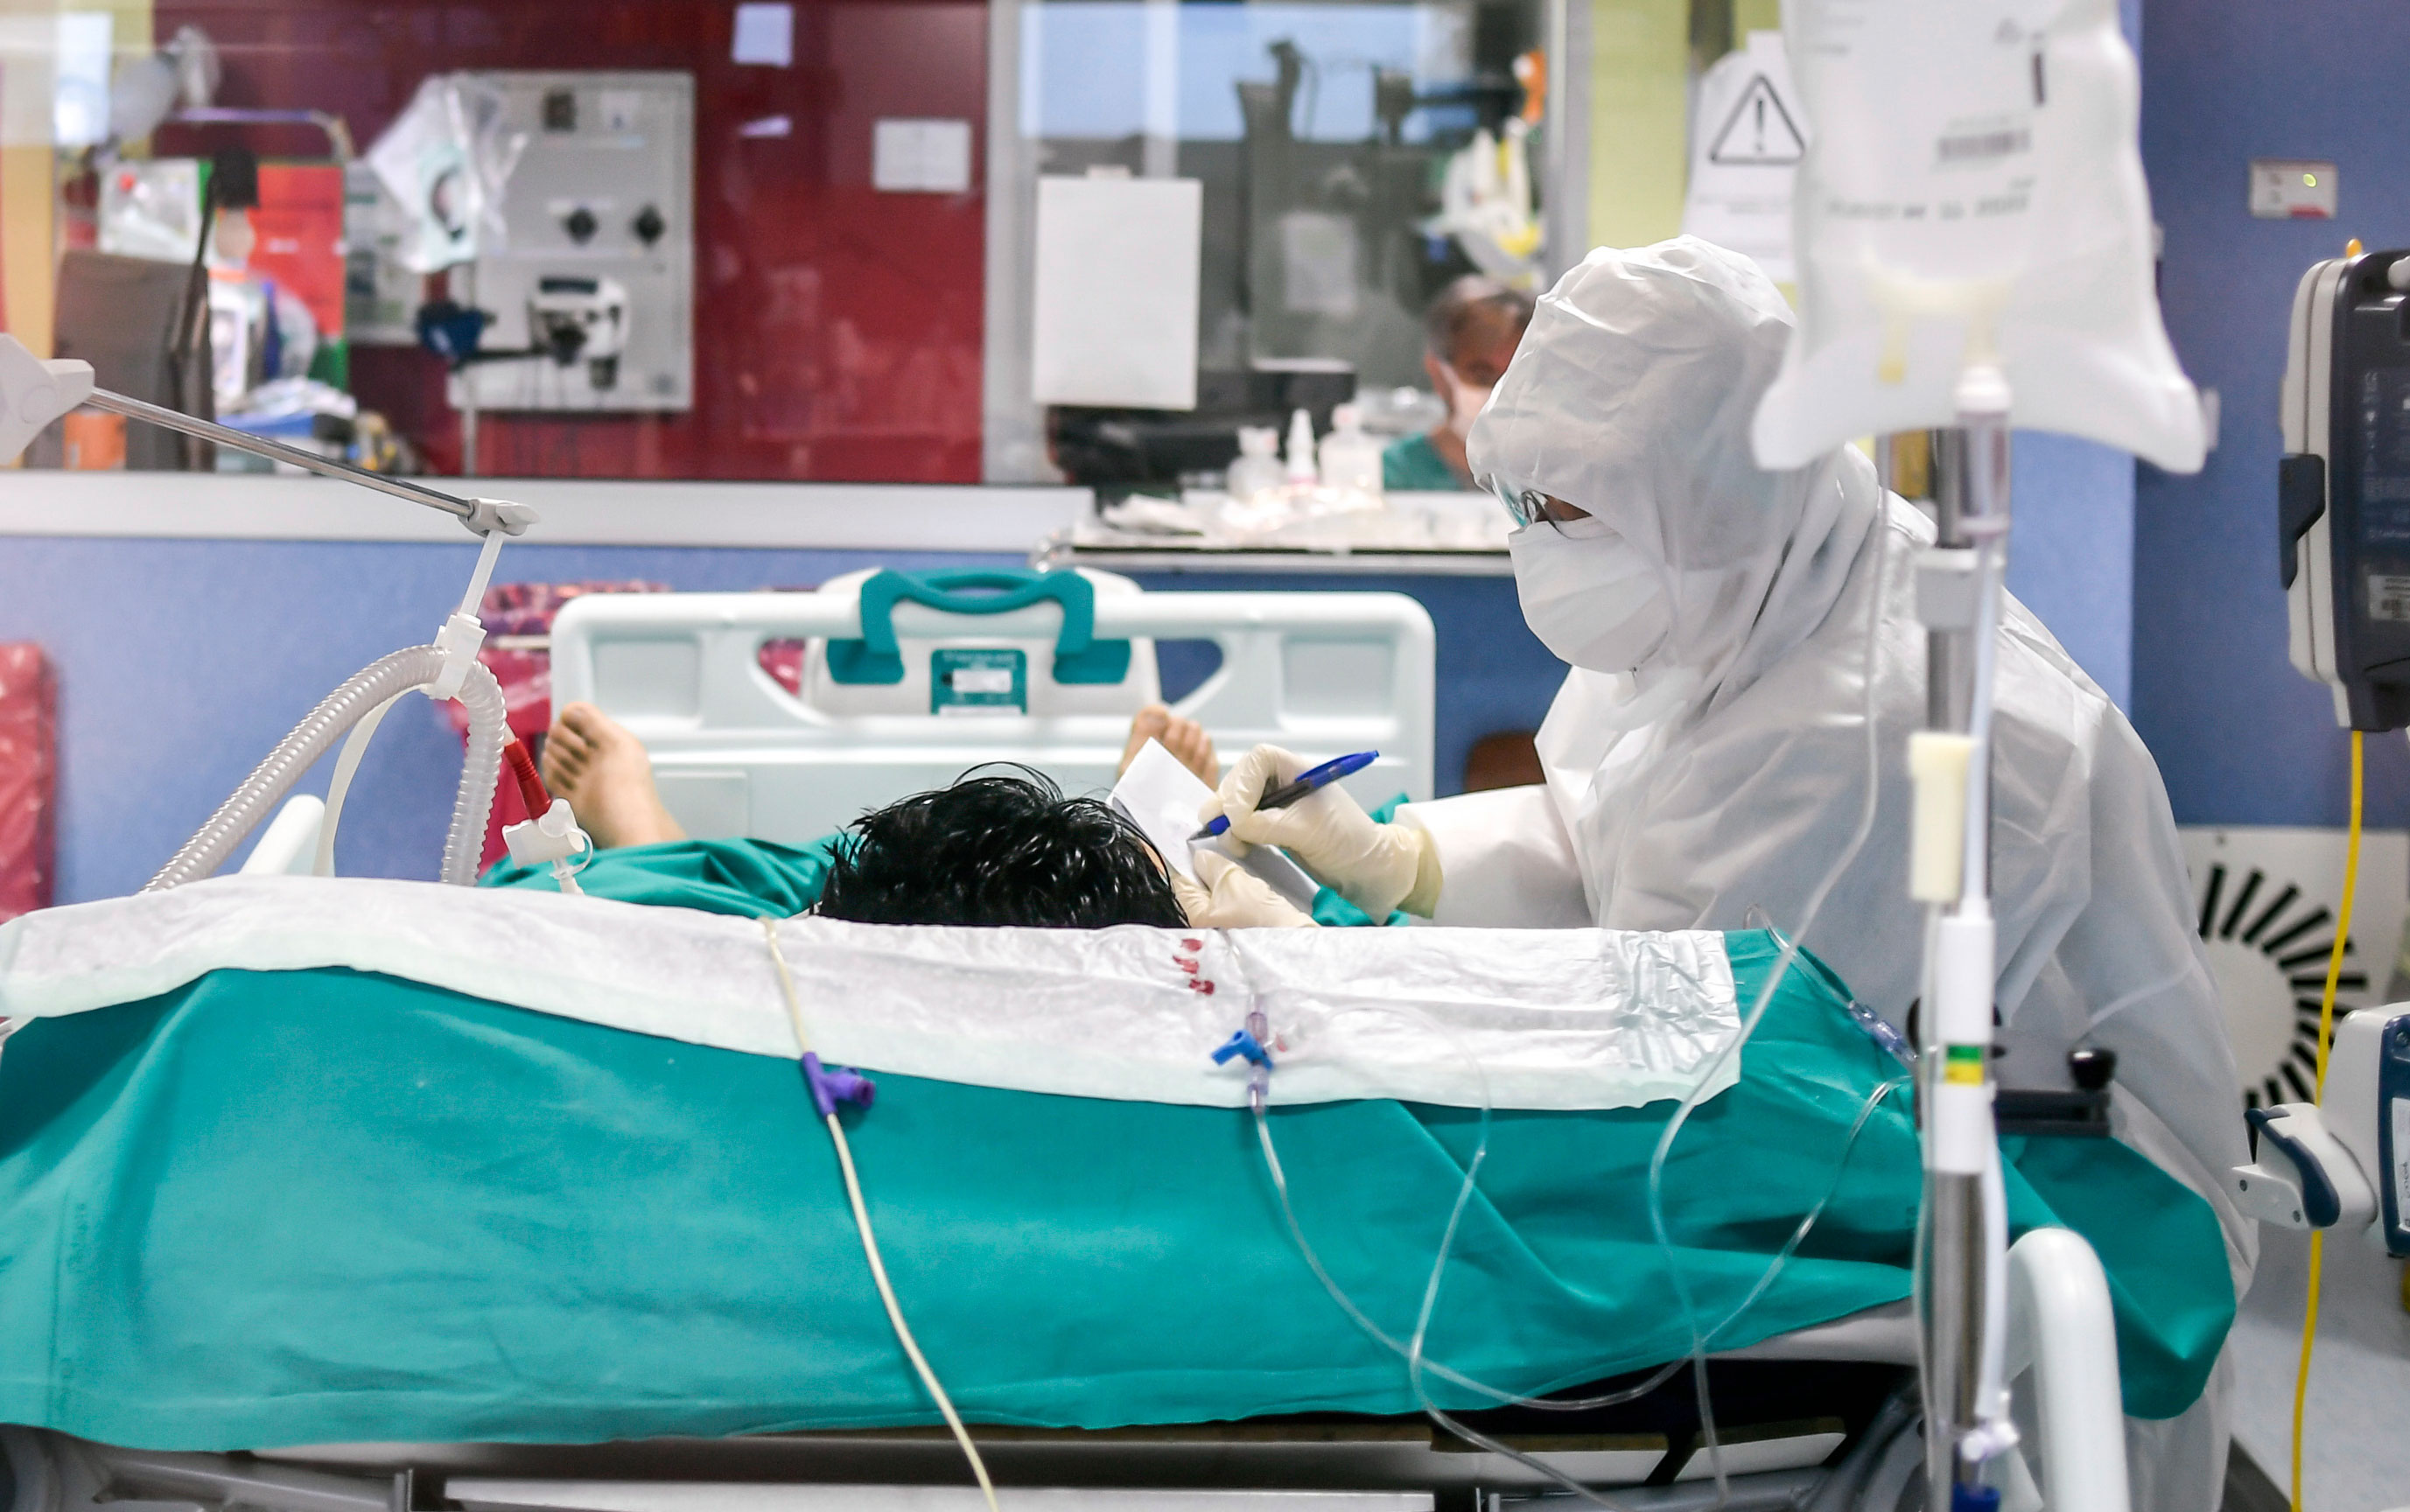 A medical worker tends to a patient in the ICU of the Bassini Hospital, in Cinisello Balsamo, Italy, on April 14.